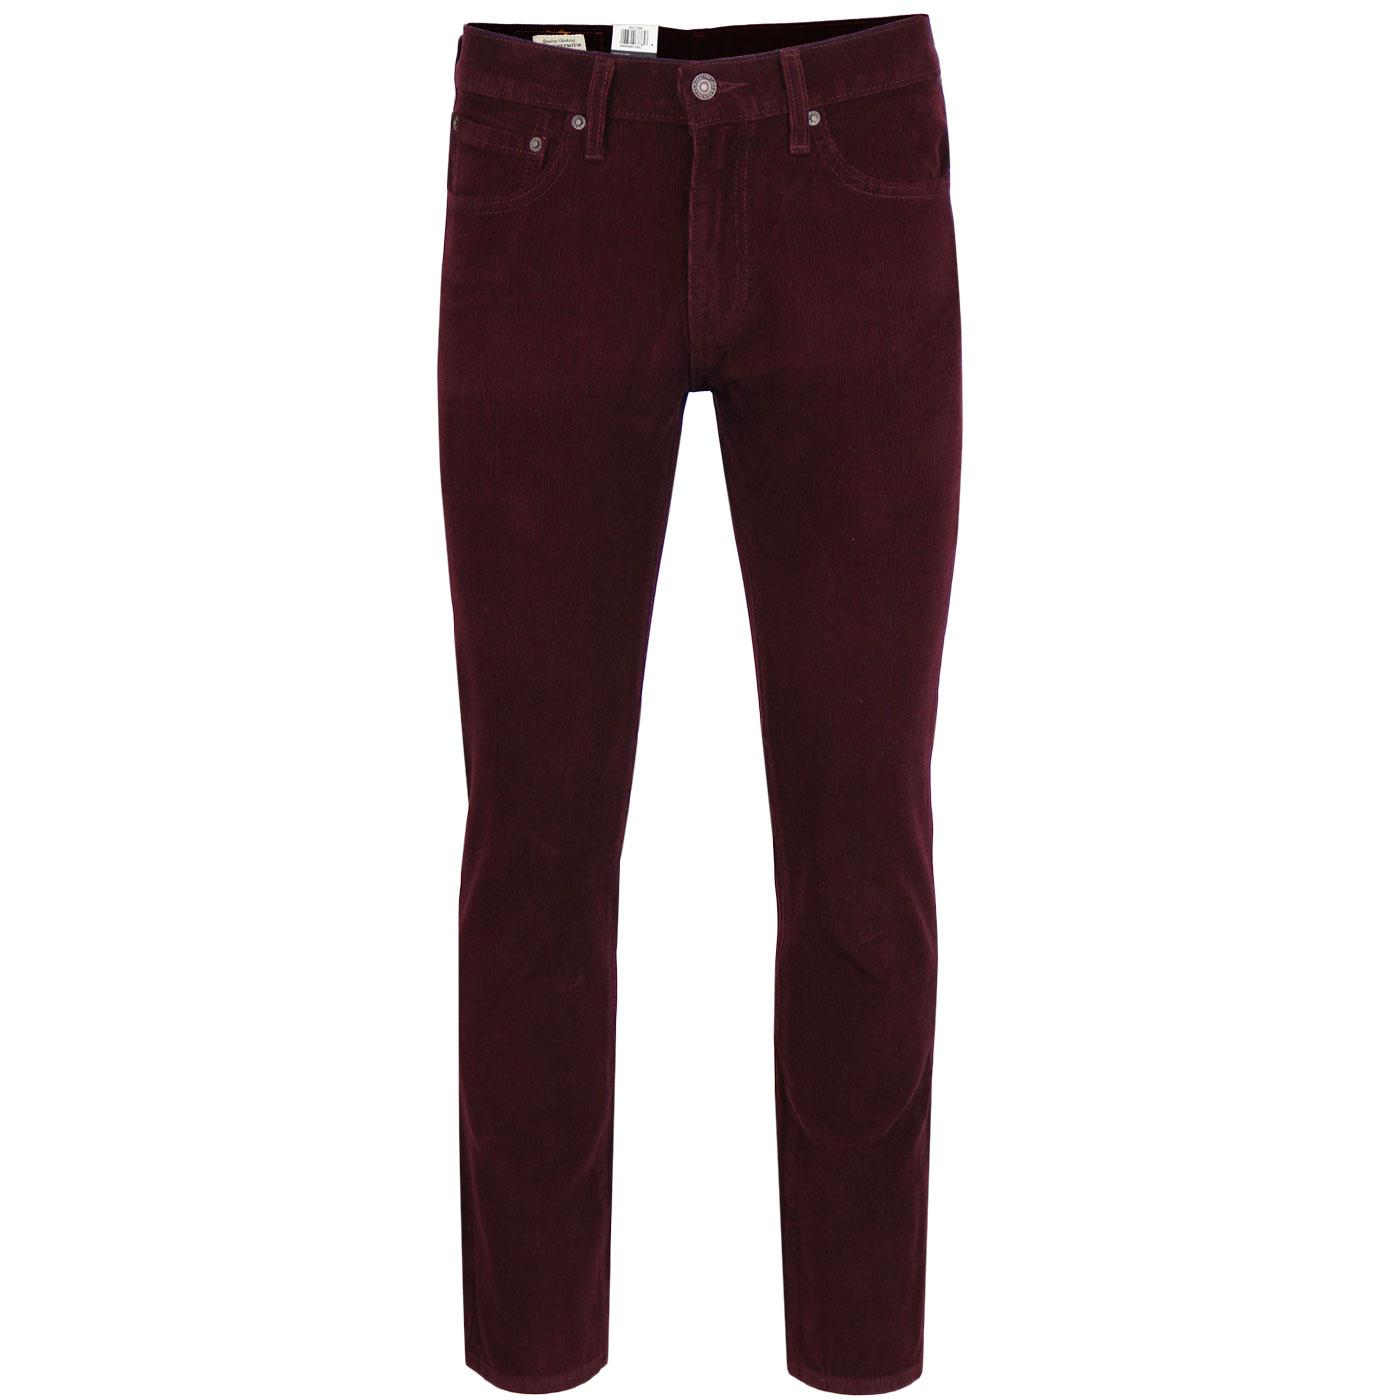 LEVI'S 511 Retro Mod Slim Cord Jeans (Mulled Wine)